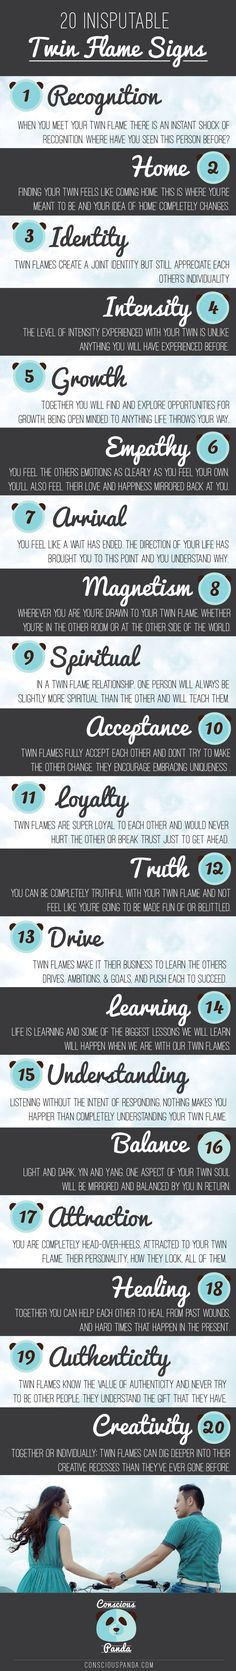 Twin Flame Signs Infographic